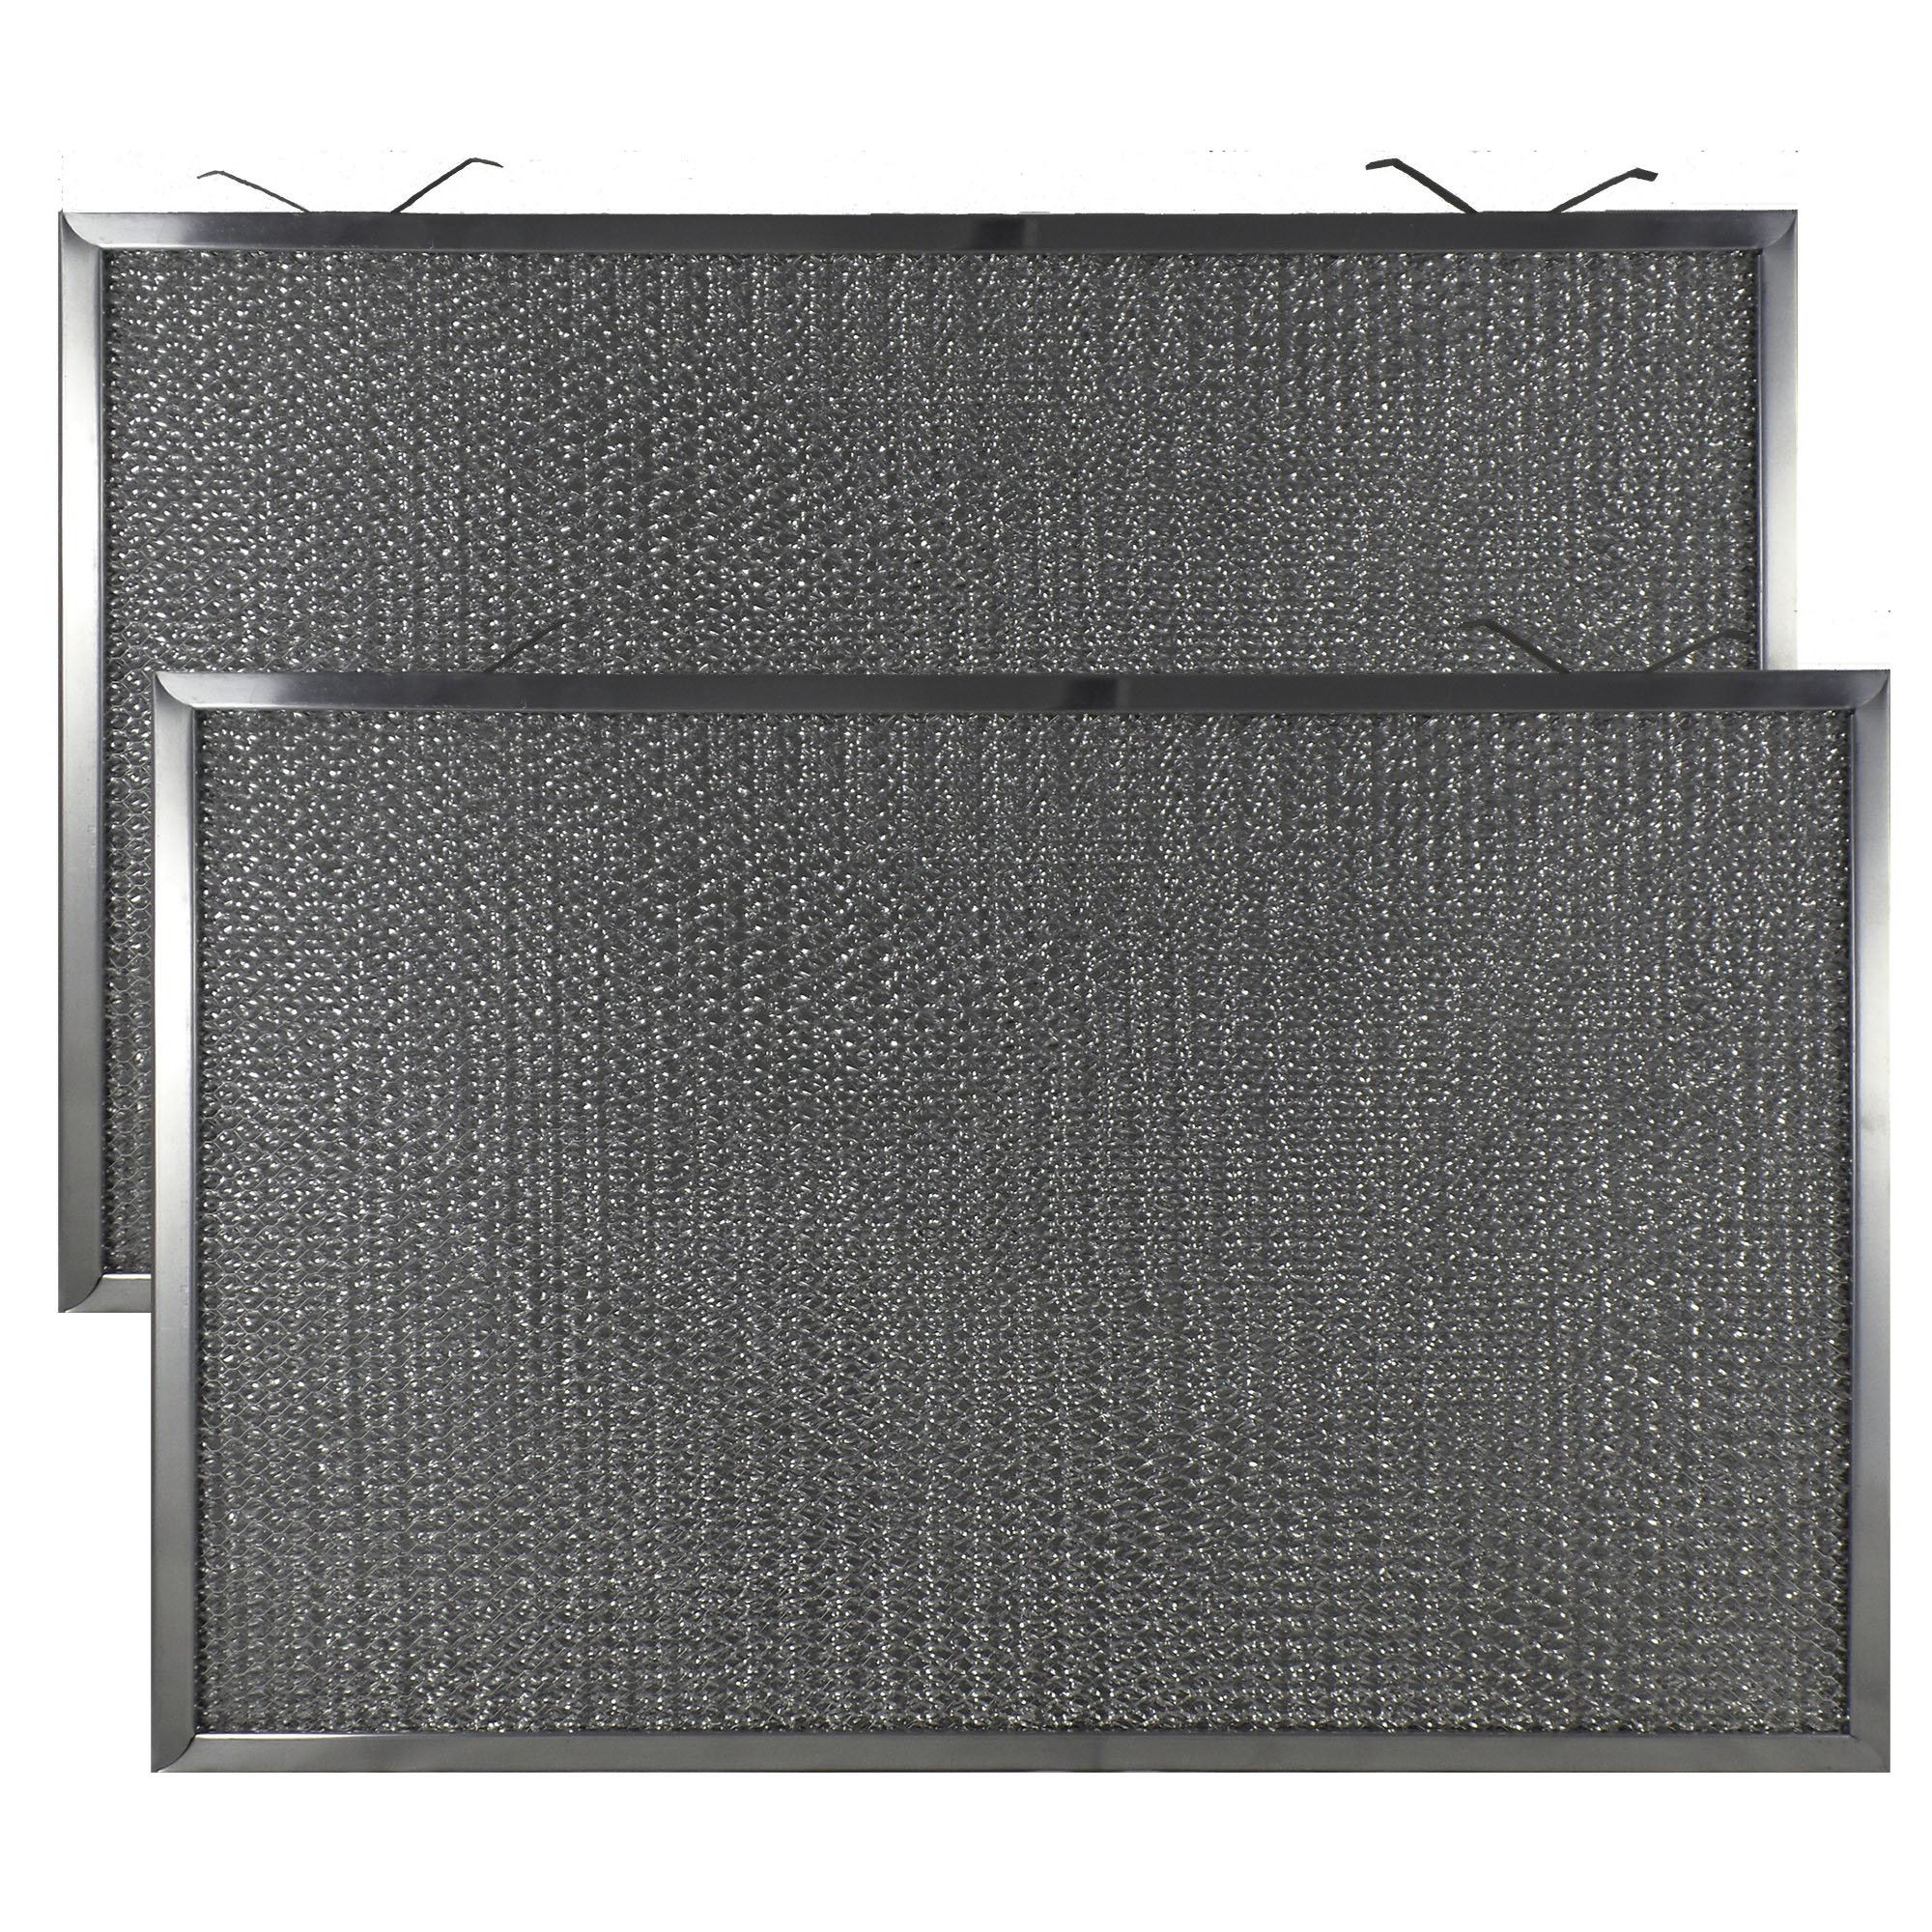 2 PACK Air Filter Factory 11-3/4 X 18-1/4 X 3/8 Range Hood Aluminum Grease Filters AFF203-M